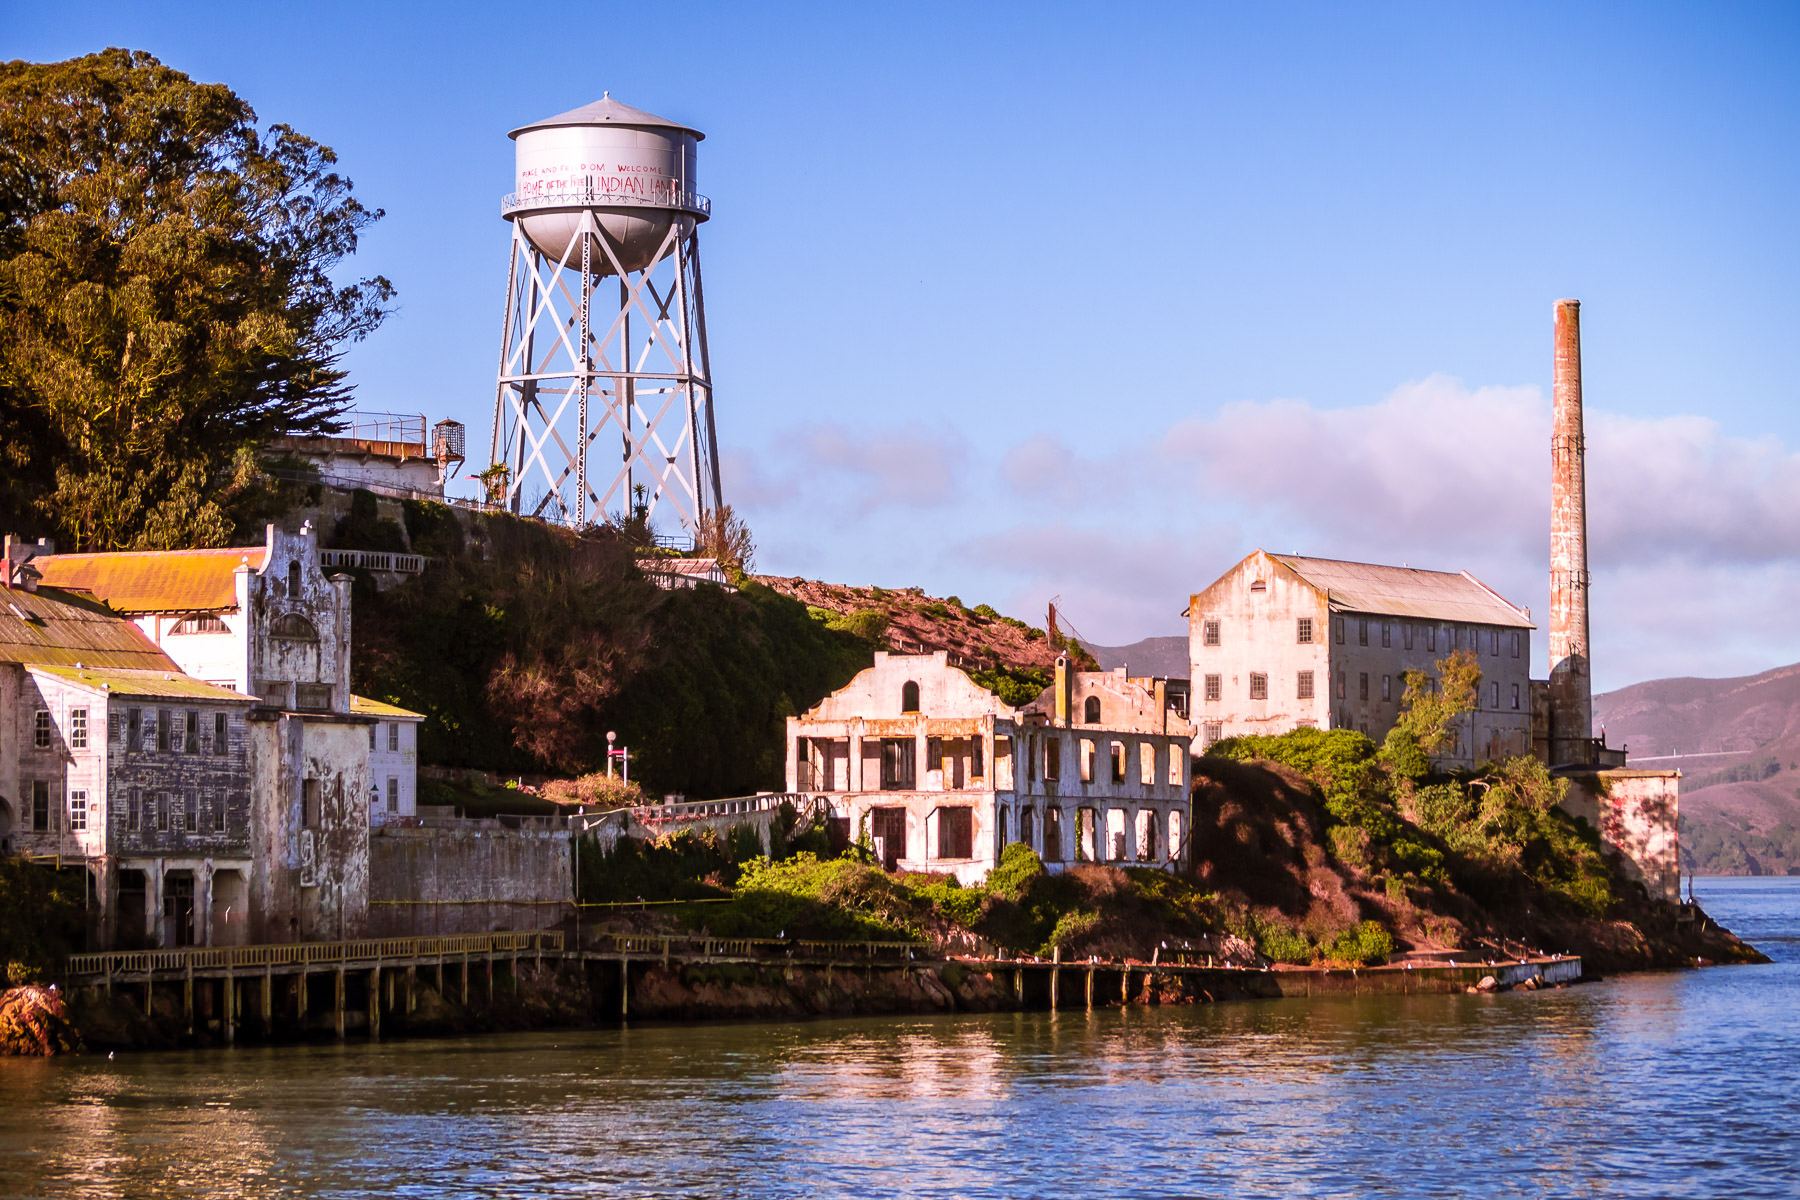 The ruins of Alcatraz Federal Penitentiary rise from San Francisco Bay.